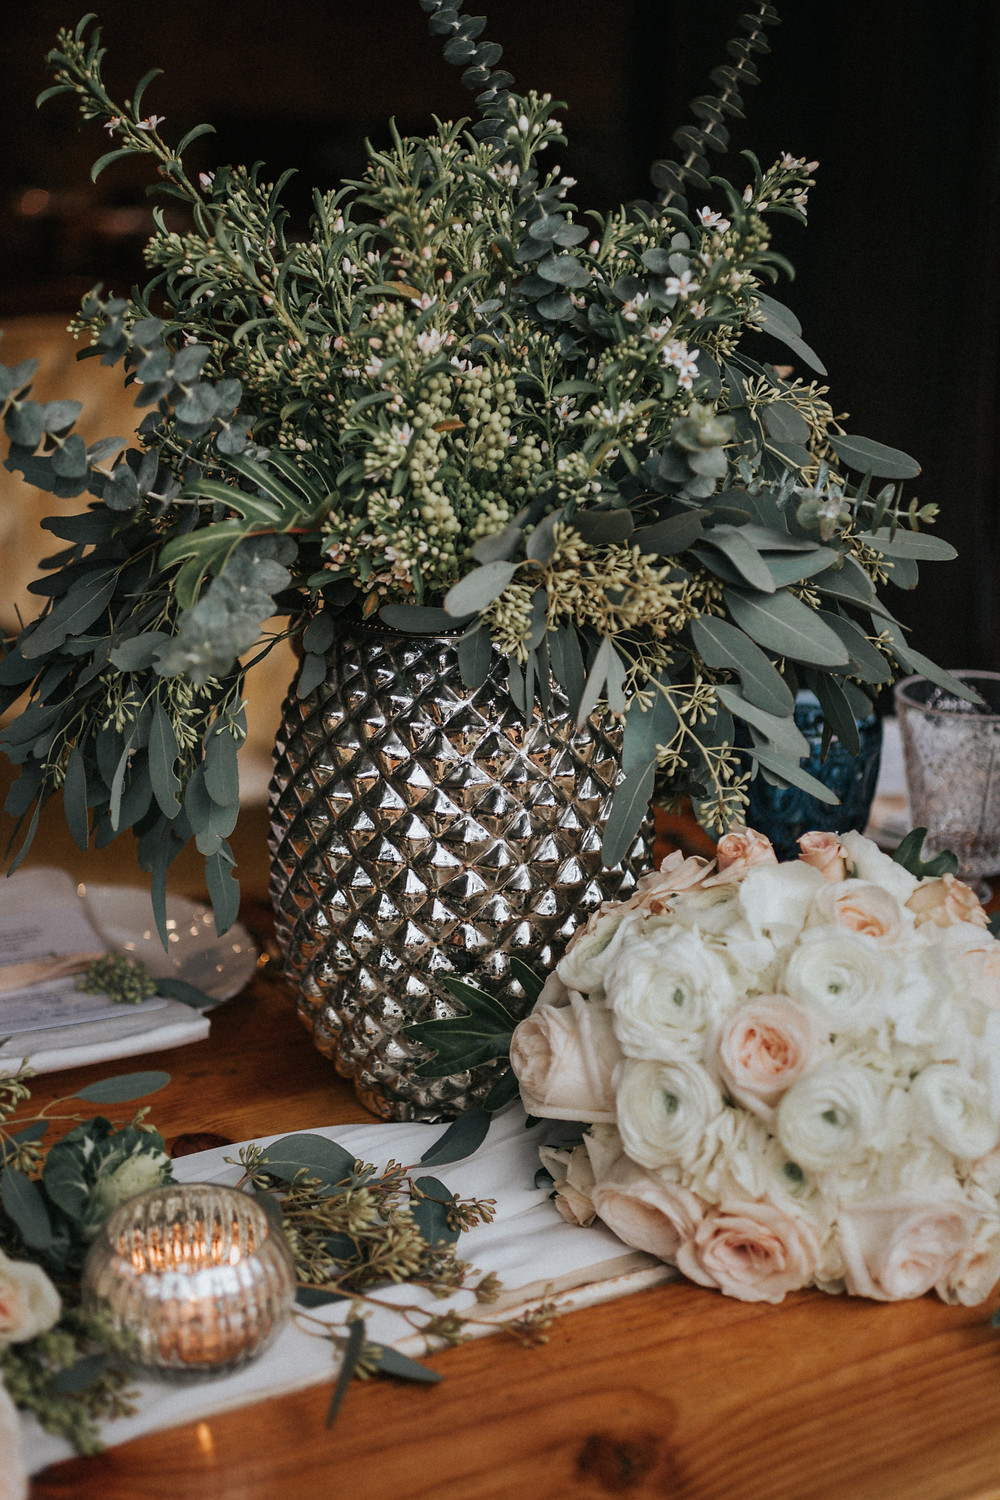 Naturally designed florals for mercury glass vase tablescape.